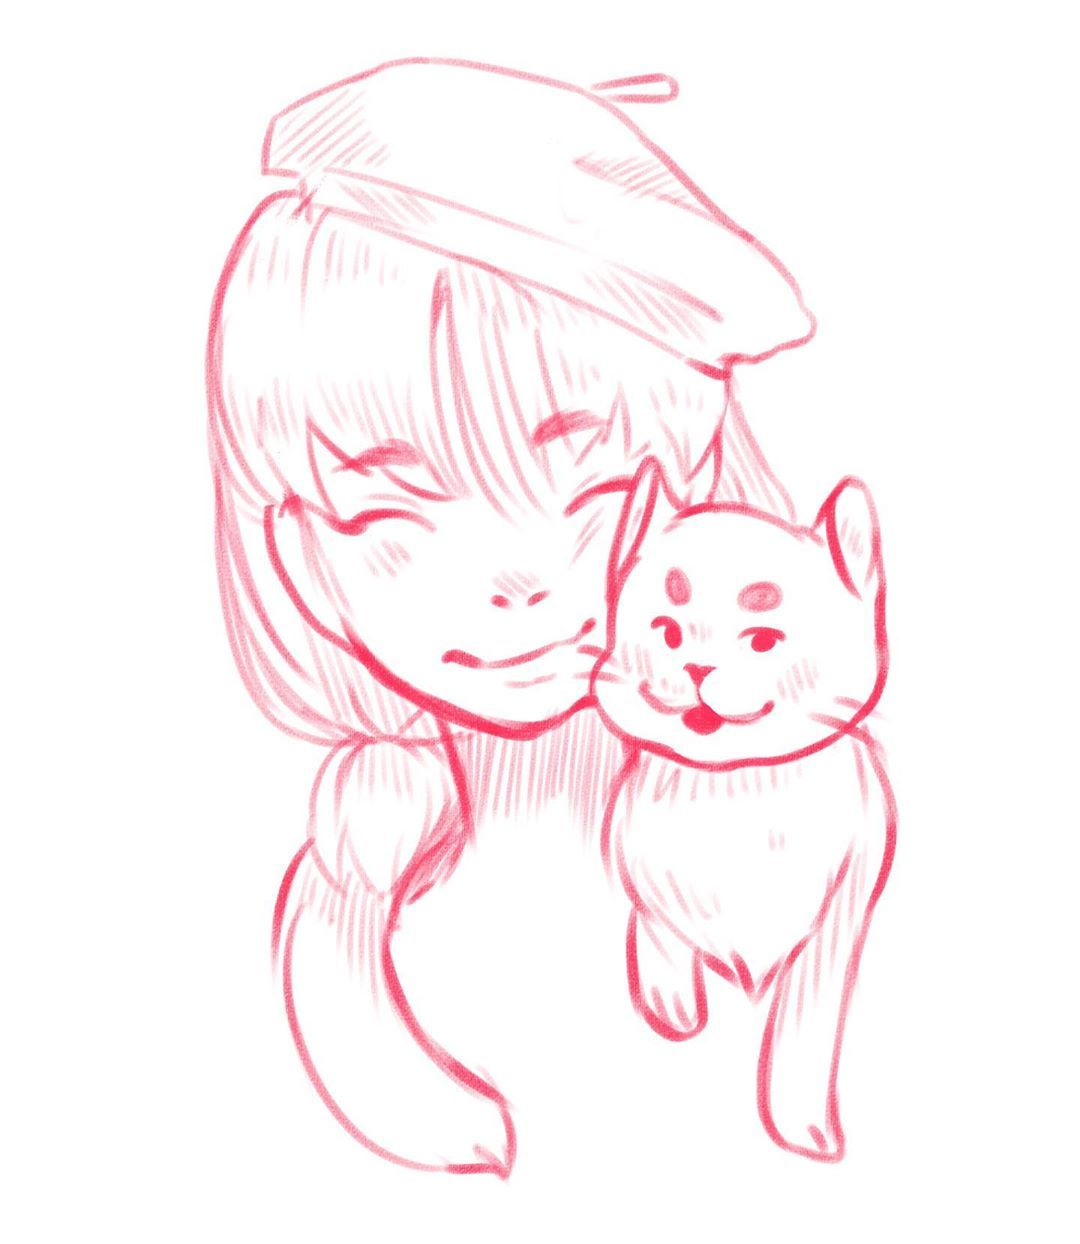 lil cute sketch I did back at the airport,, - - - - - - -